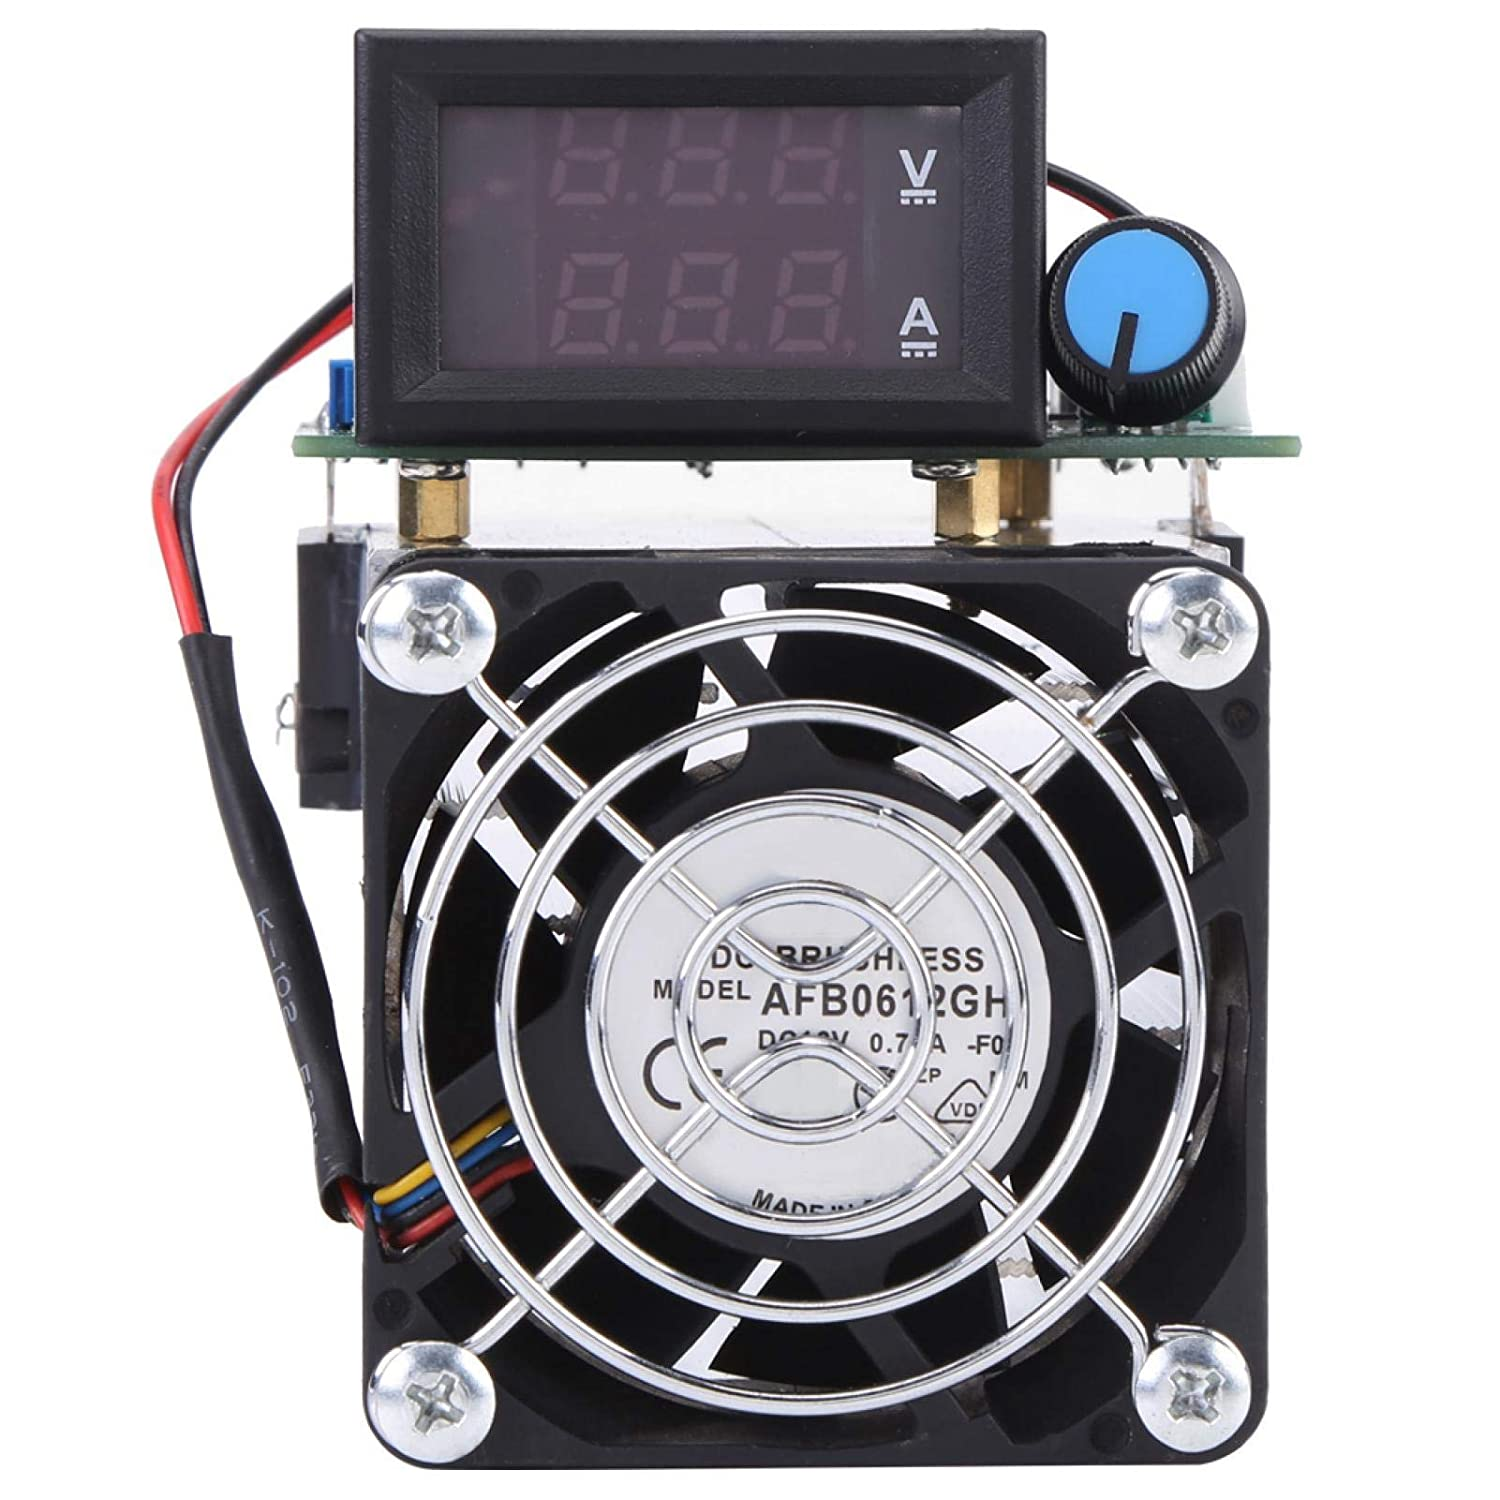 DC 12V Electronic Load Module,Discharge Battery Capacity Tester Testing Module,with Industrial Large Tooth Heat Sink,Dust-Resistant,0-10A 100W